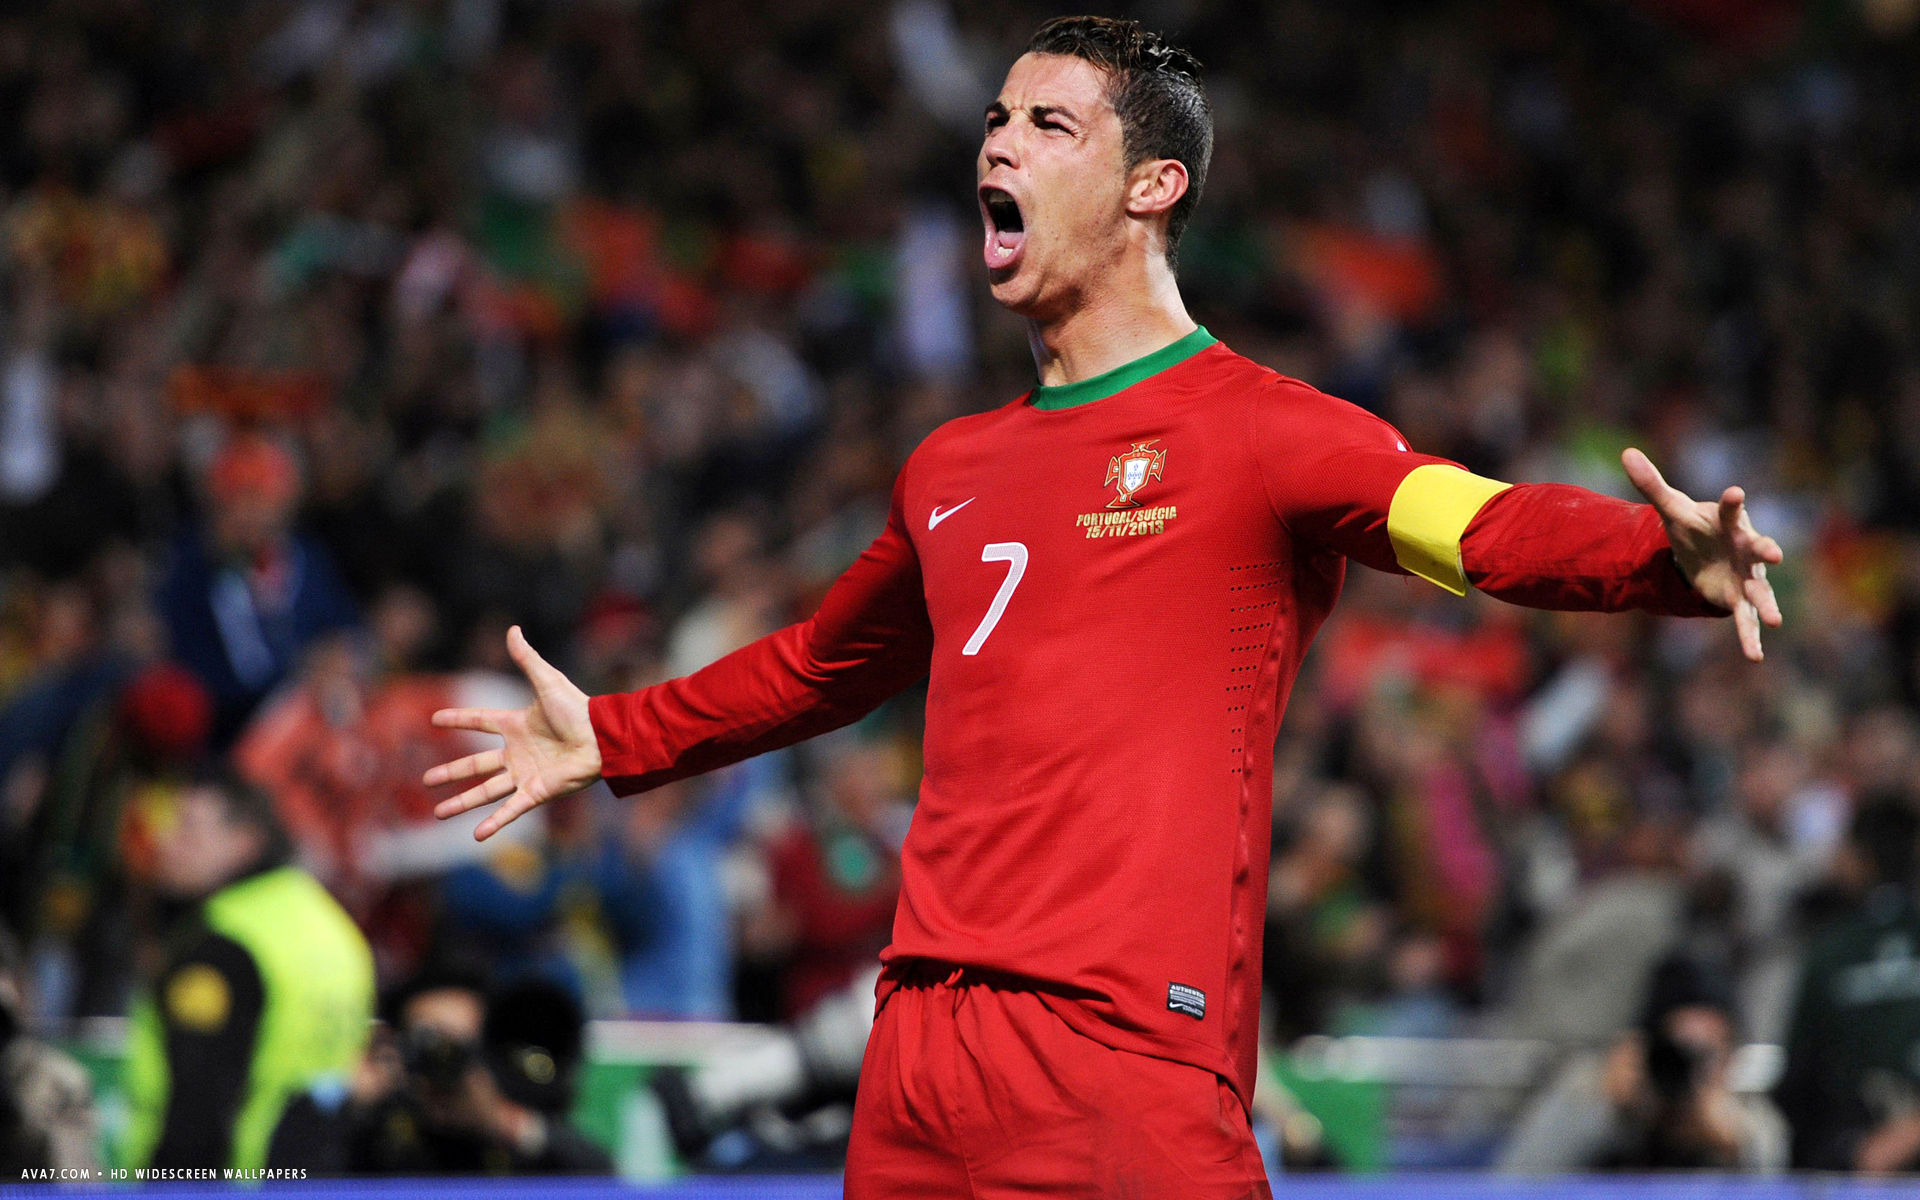 cristiano ronaldo football player hd widescreen wallpaper